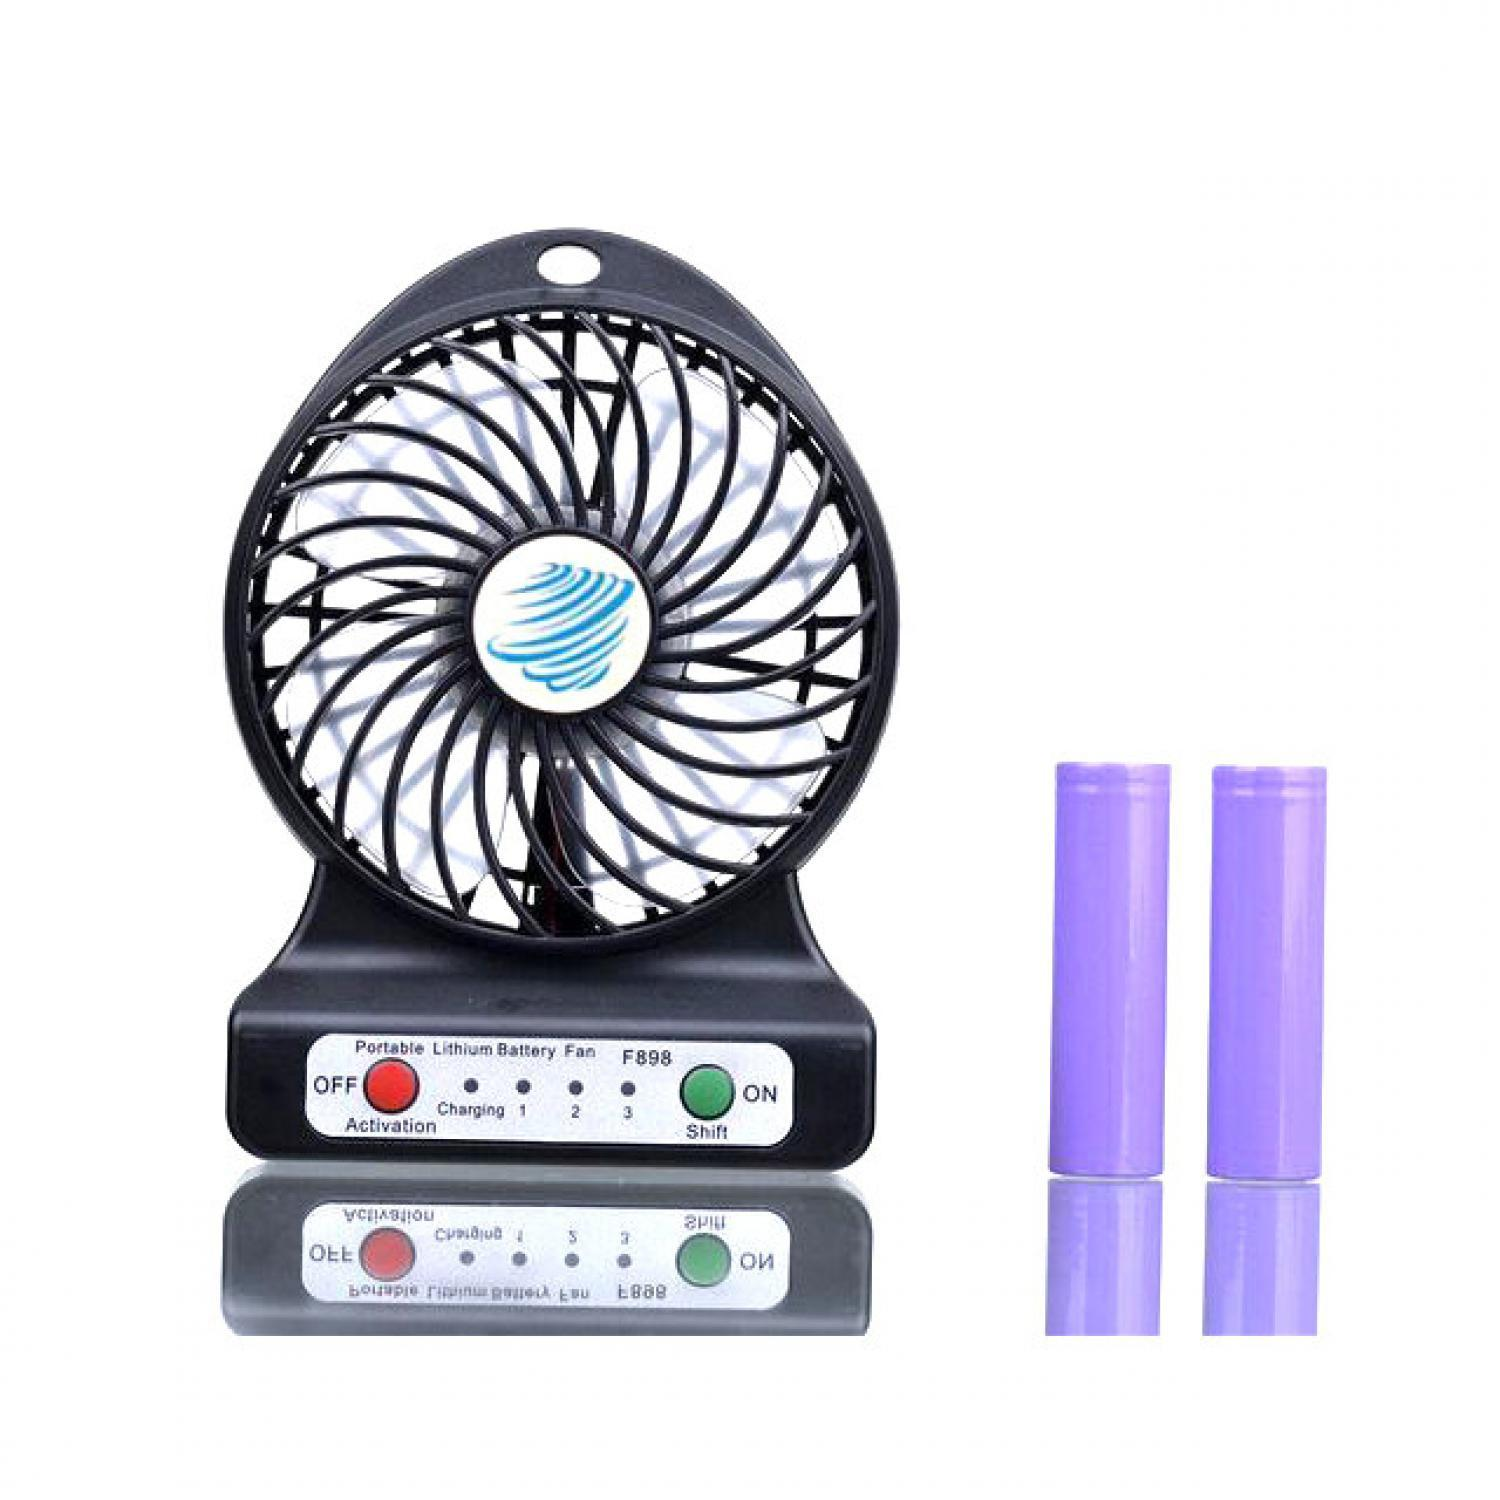 Multifunction USB Mini Fan + Power Bank 6000mAh | Komputer